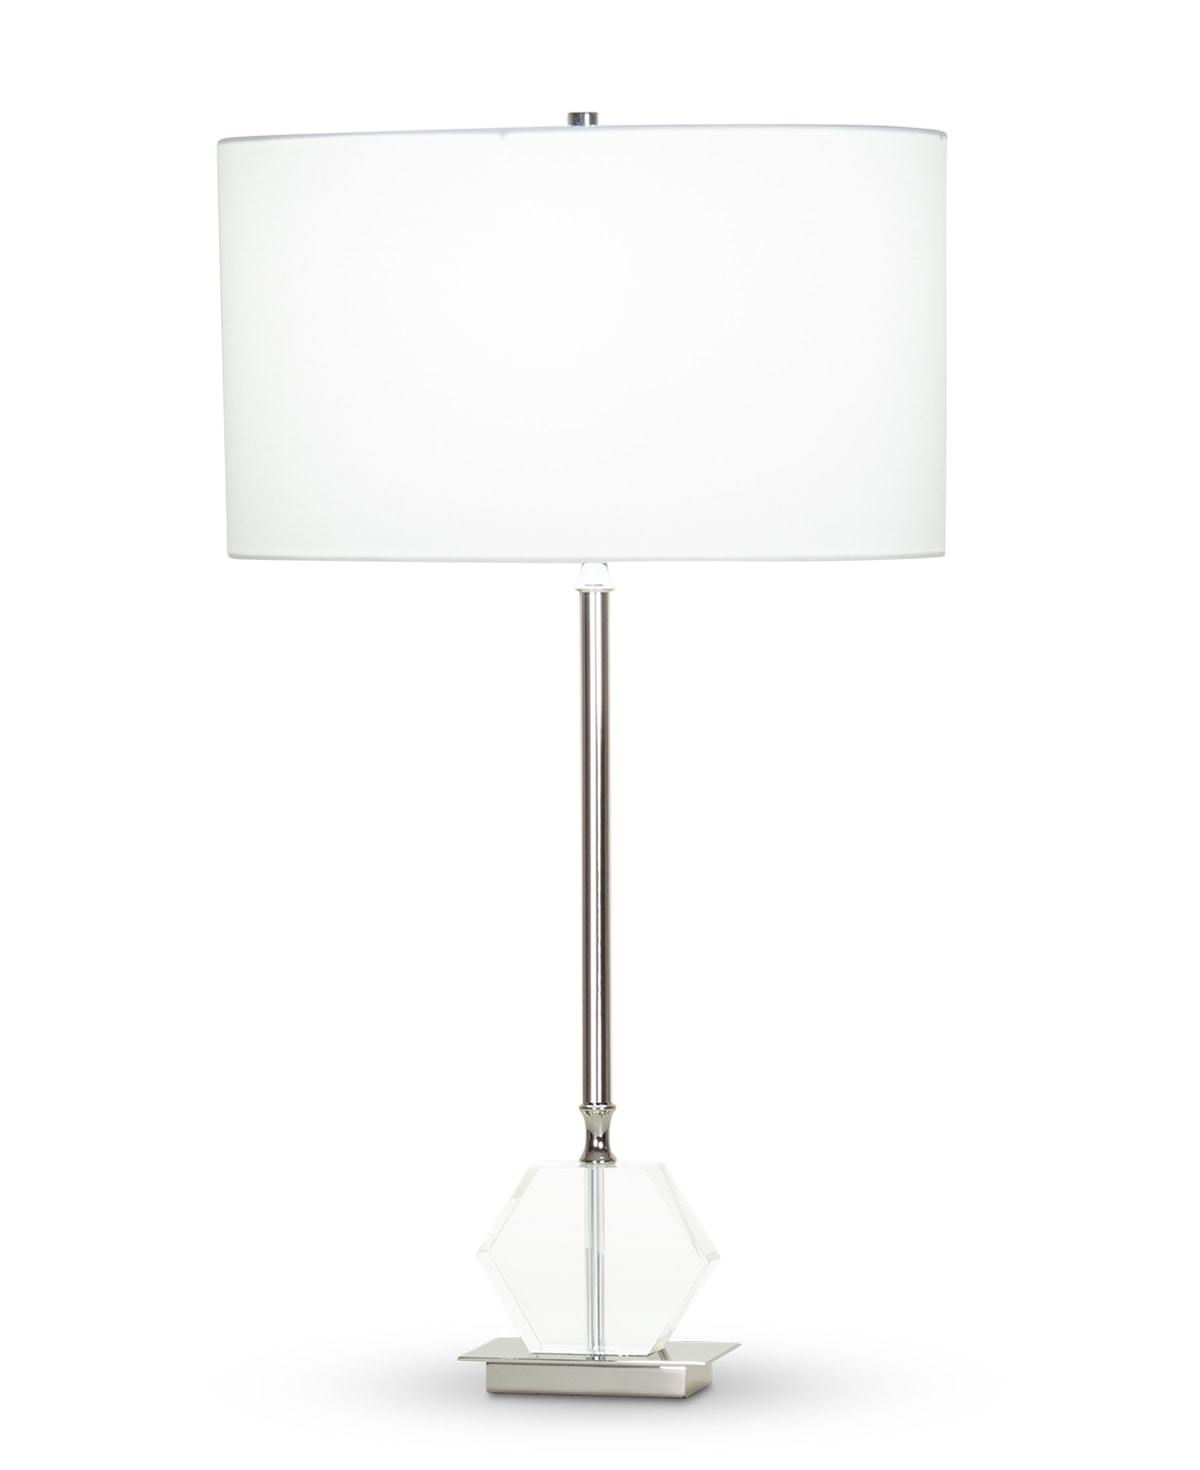 FlowDecor Ellen Table Lamp in crystal and metal with polished nickel finish and off-white cotton oval shade (# 4363)